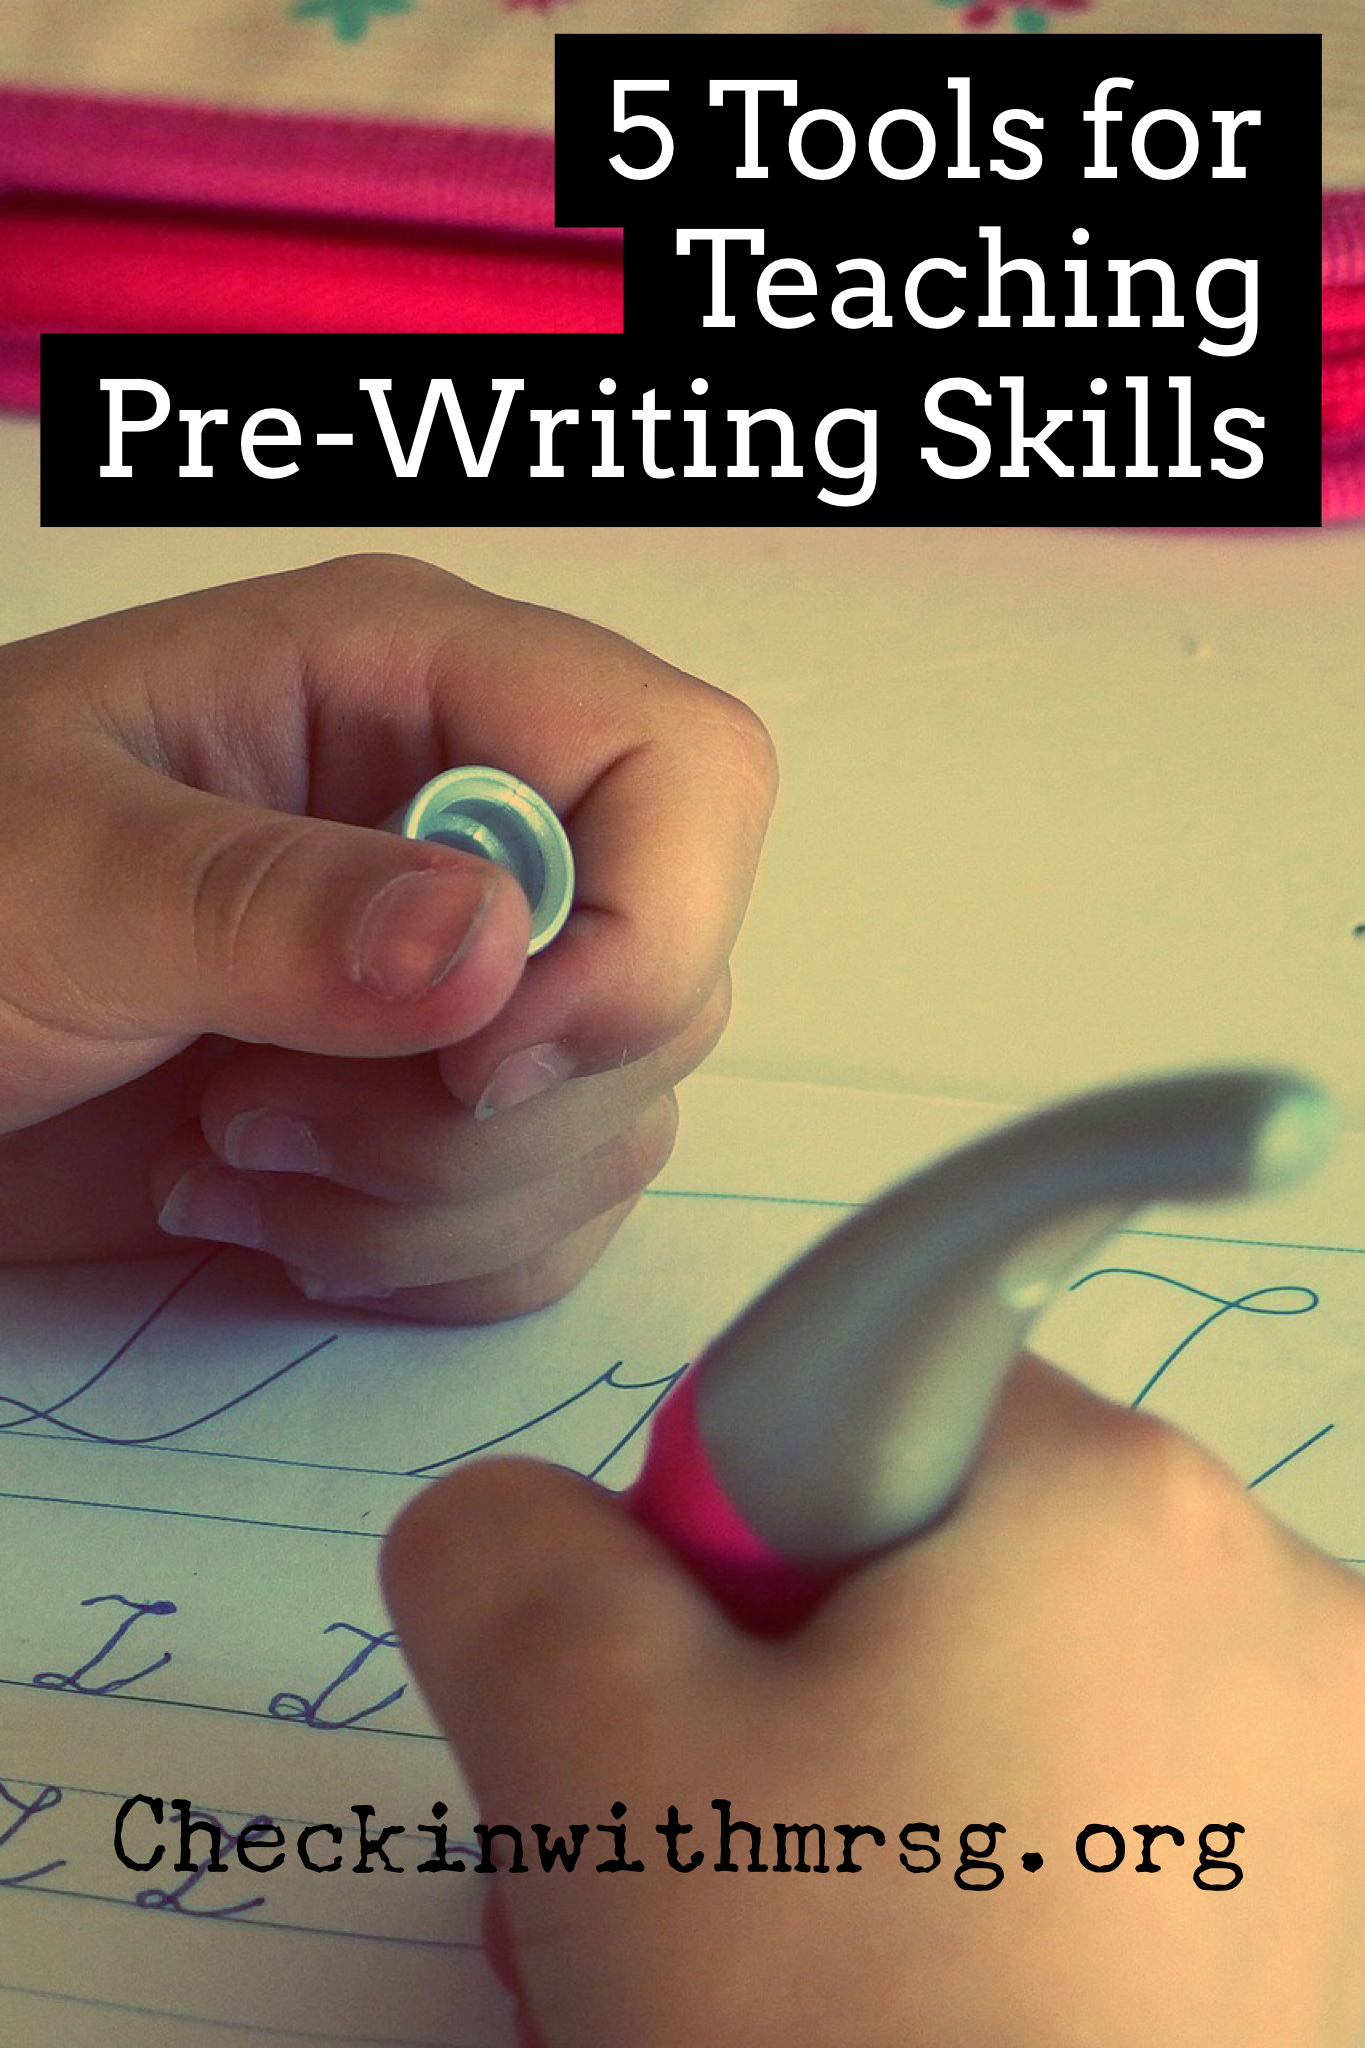 Tools and strategies for teaching pre-writing skills in special